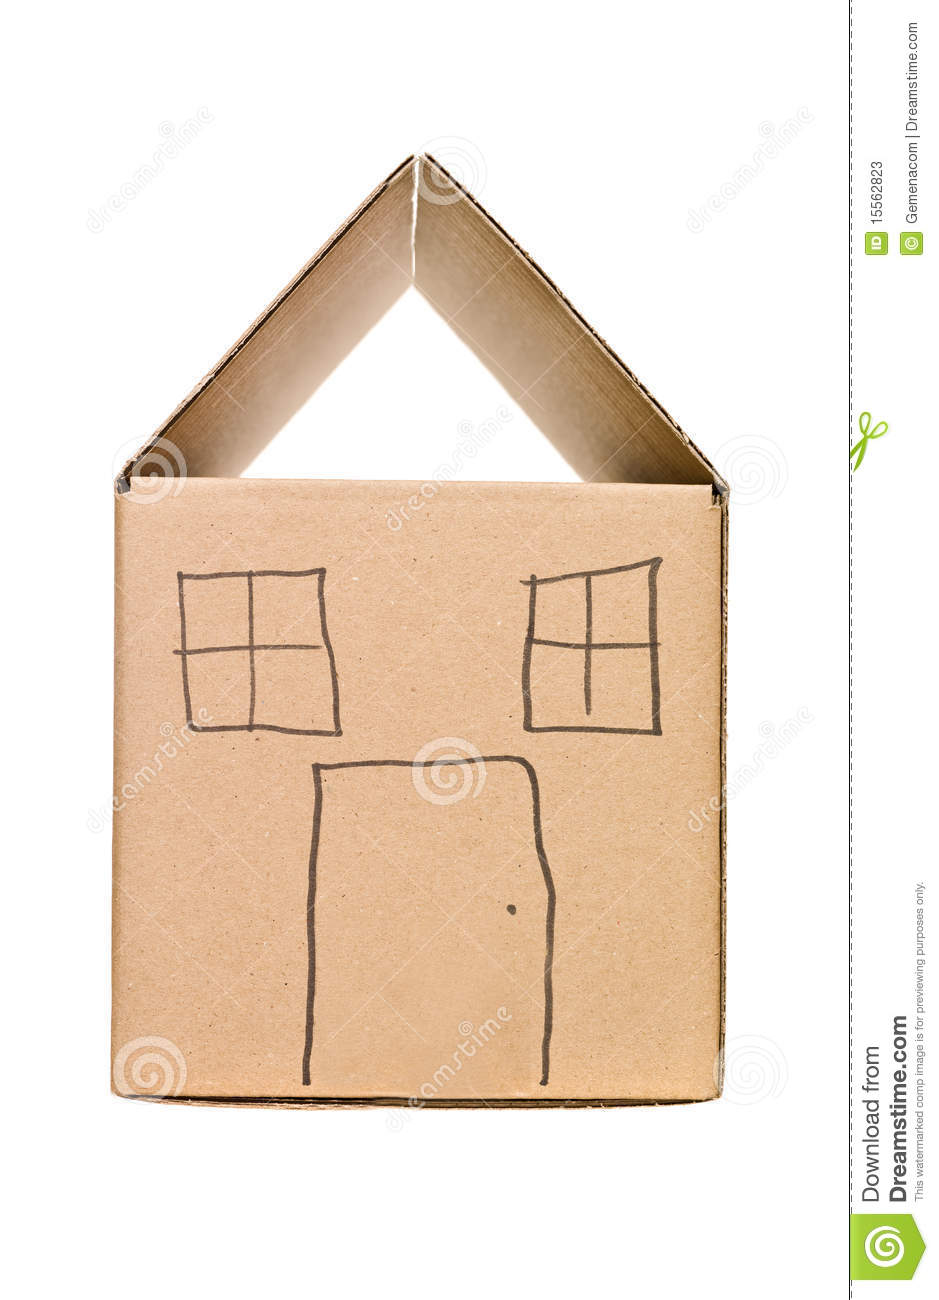 House made of cardboard box stock image image of for House in a box